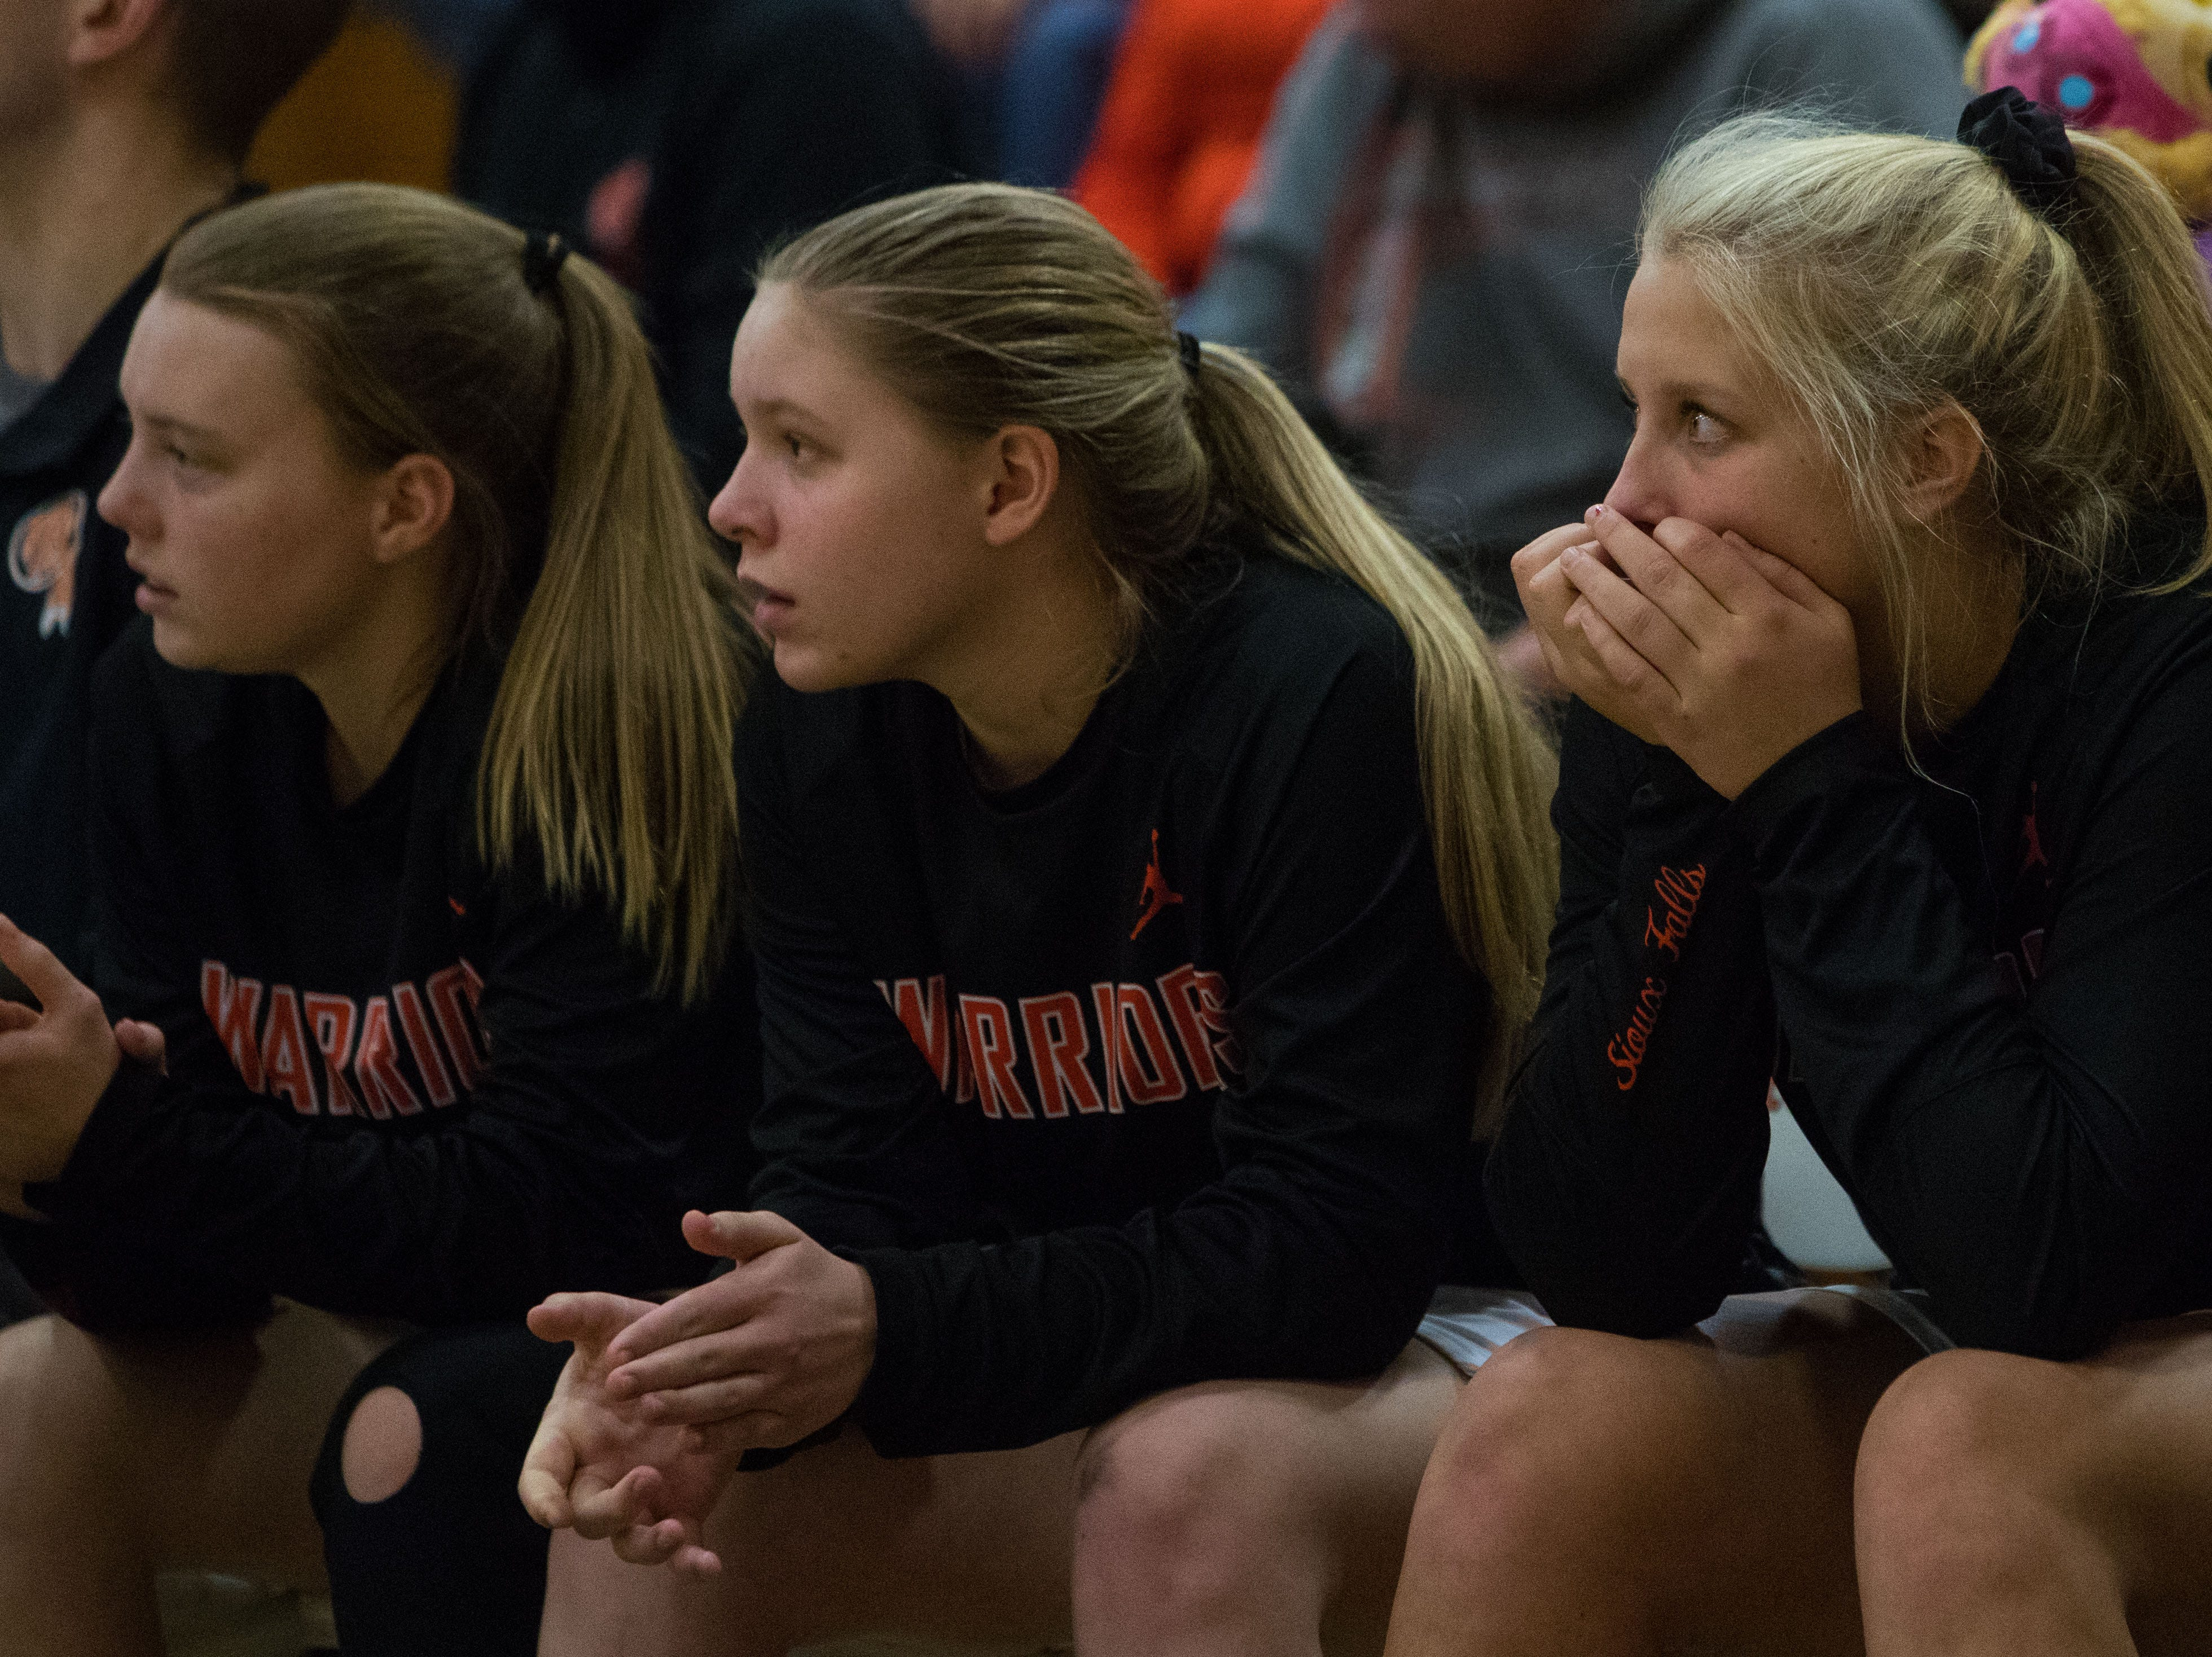 Washington players watch the Rapid City Stevens game in Sioux Falls, S.D., Friday, Feb. 8, 2019.